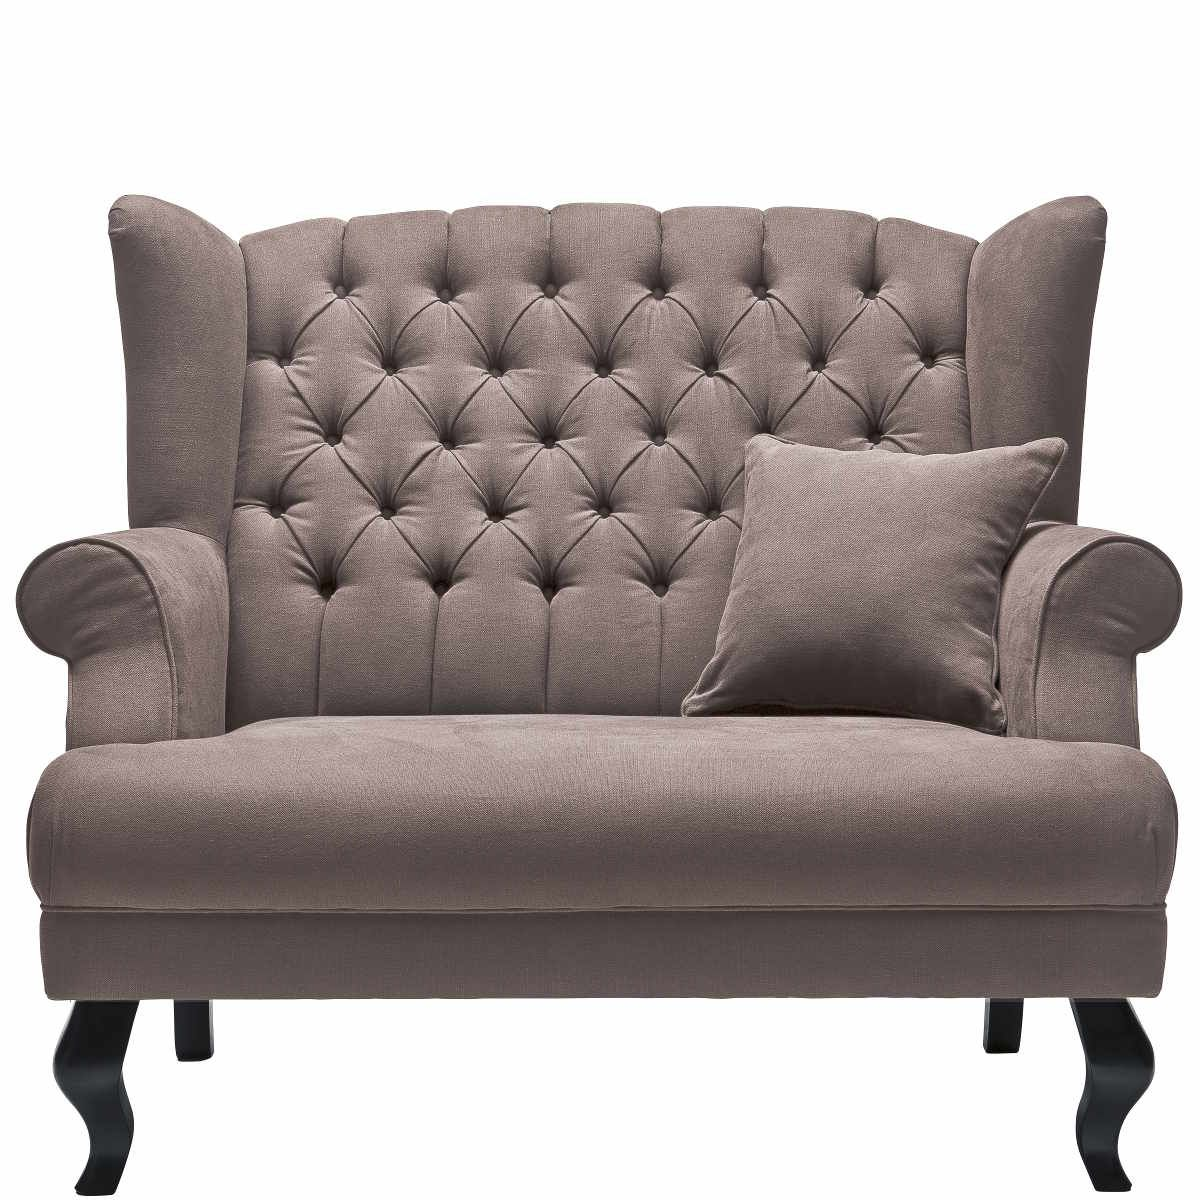 Sessel Butlers Grand Duc Sessel Möbel Love Seat Sofa Und Velvet Couch